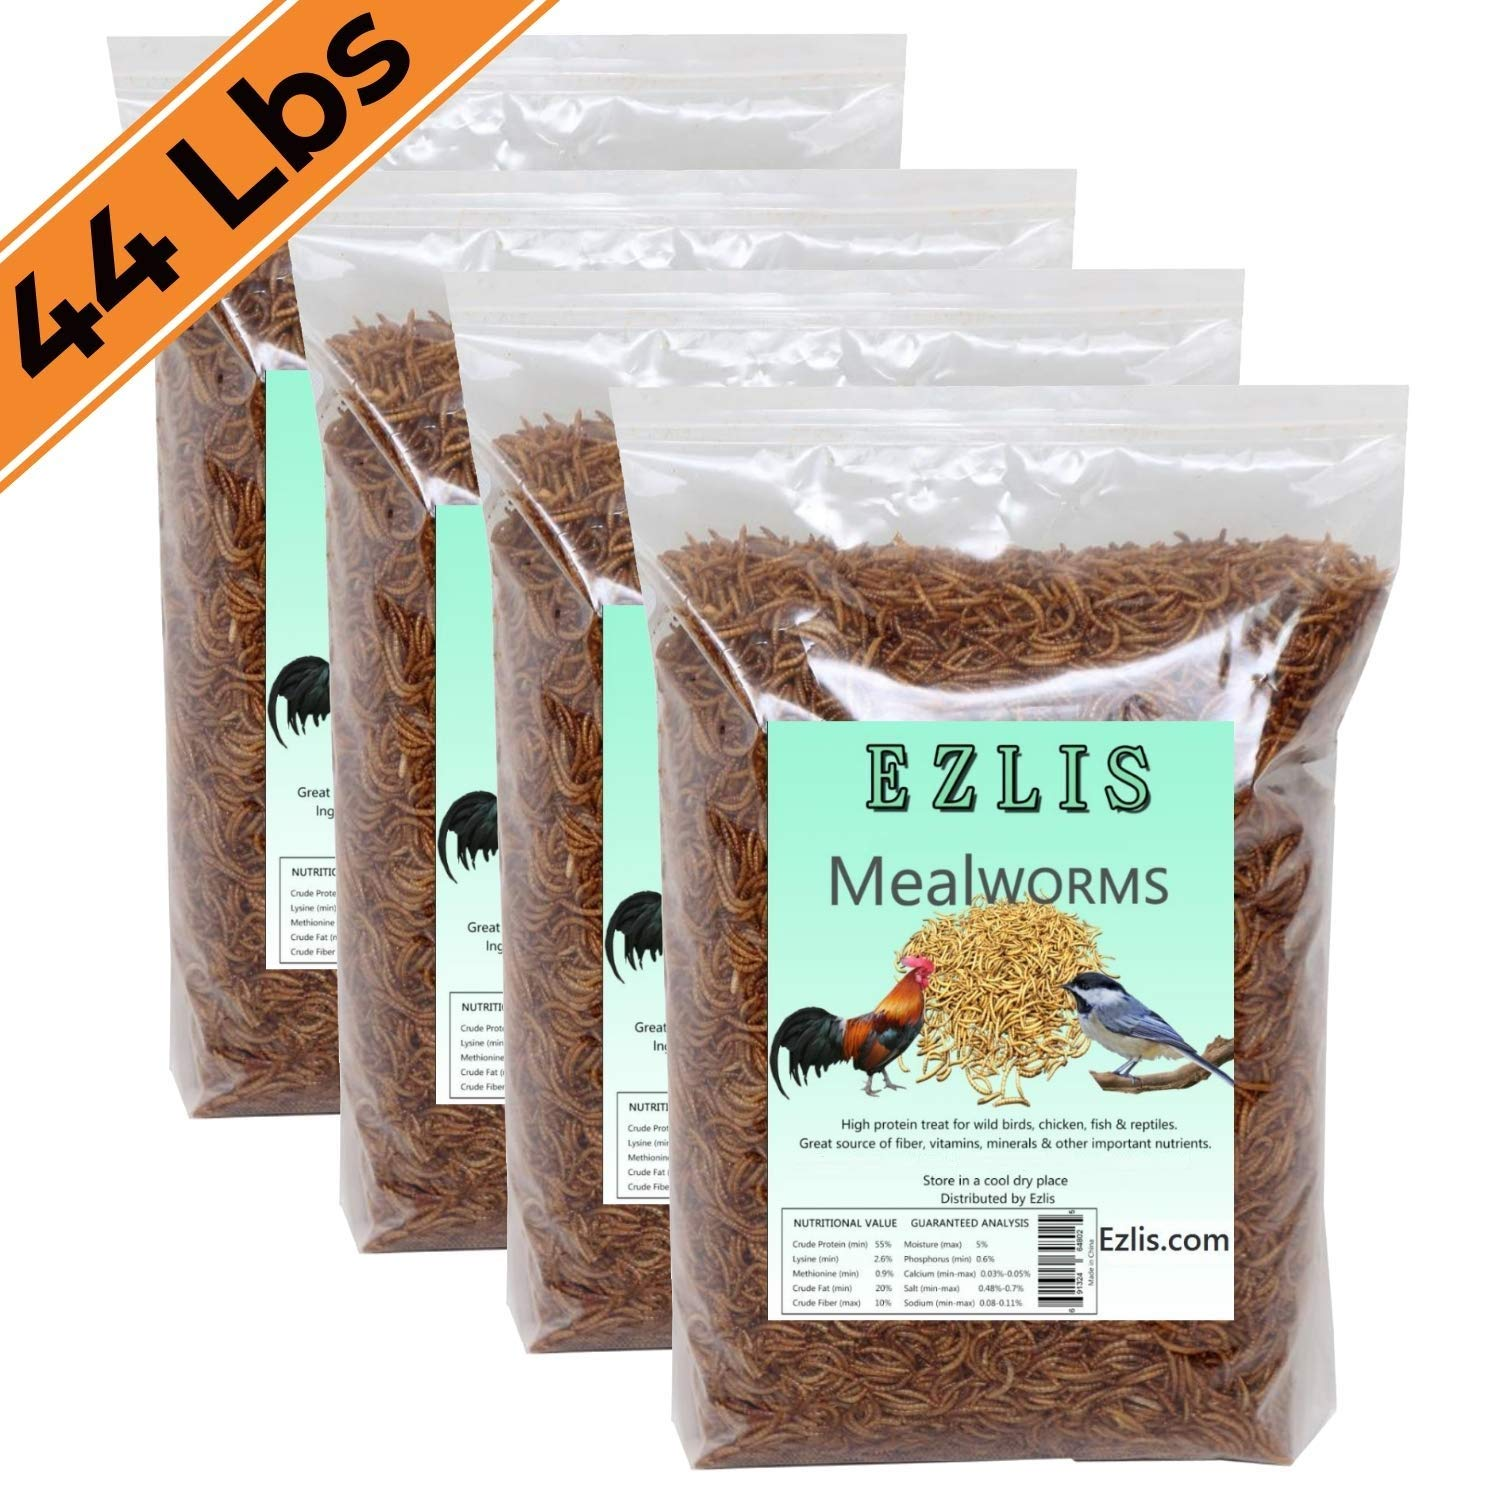 Ezlis Dried Mealworms for Chickens 44lbs - Chicken Treats, Duck Feed, Organic Chicken Feed, High-Protein Meal Worms Bulk Food for Chickens, Bluebird Food, Poultry Feed, Hens, Wild Birds, Fish, Turtle by Ezlis